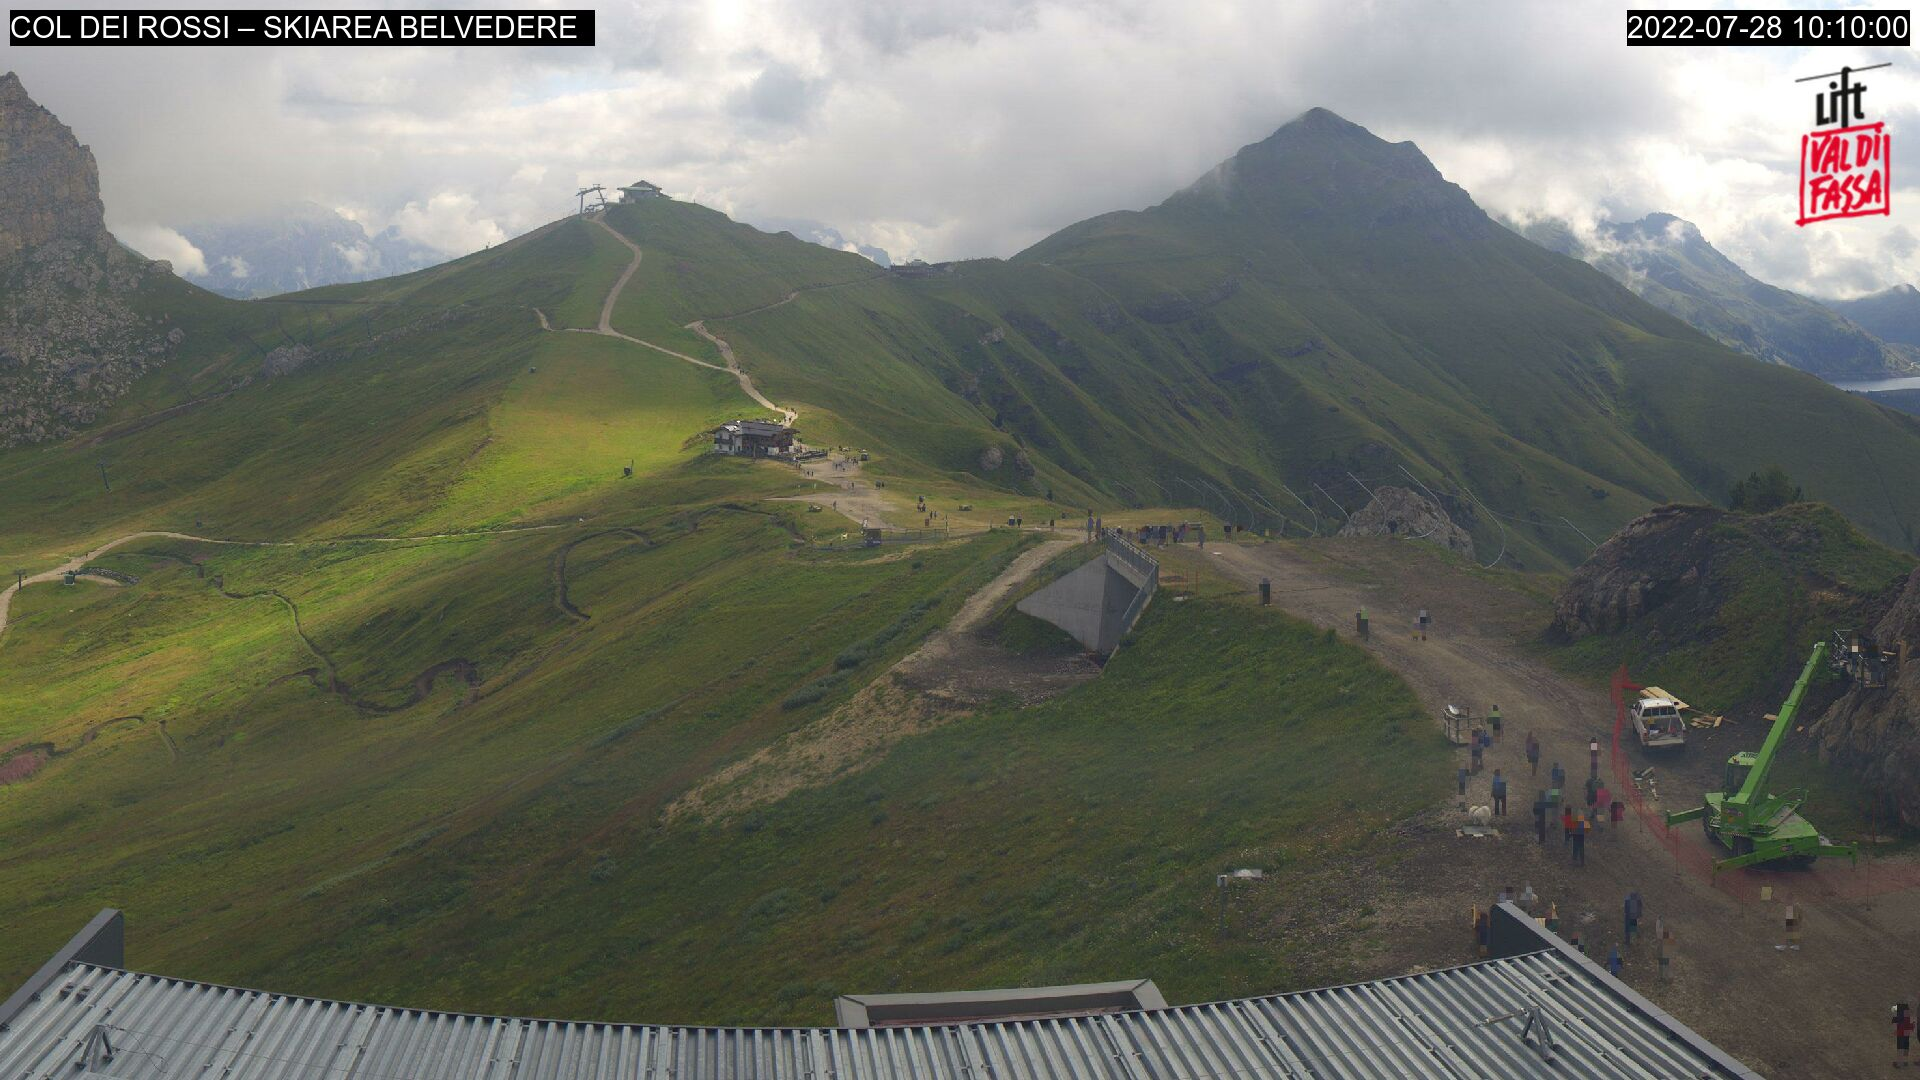 Webcam Canazei - Belvedere - Col dei Rossi - Altitude: 2,413 metresArea: Col dei RossiPanoramic viewpoint: static webcam. Glimpse of the Canazei ski area and the chair lifts